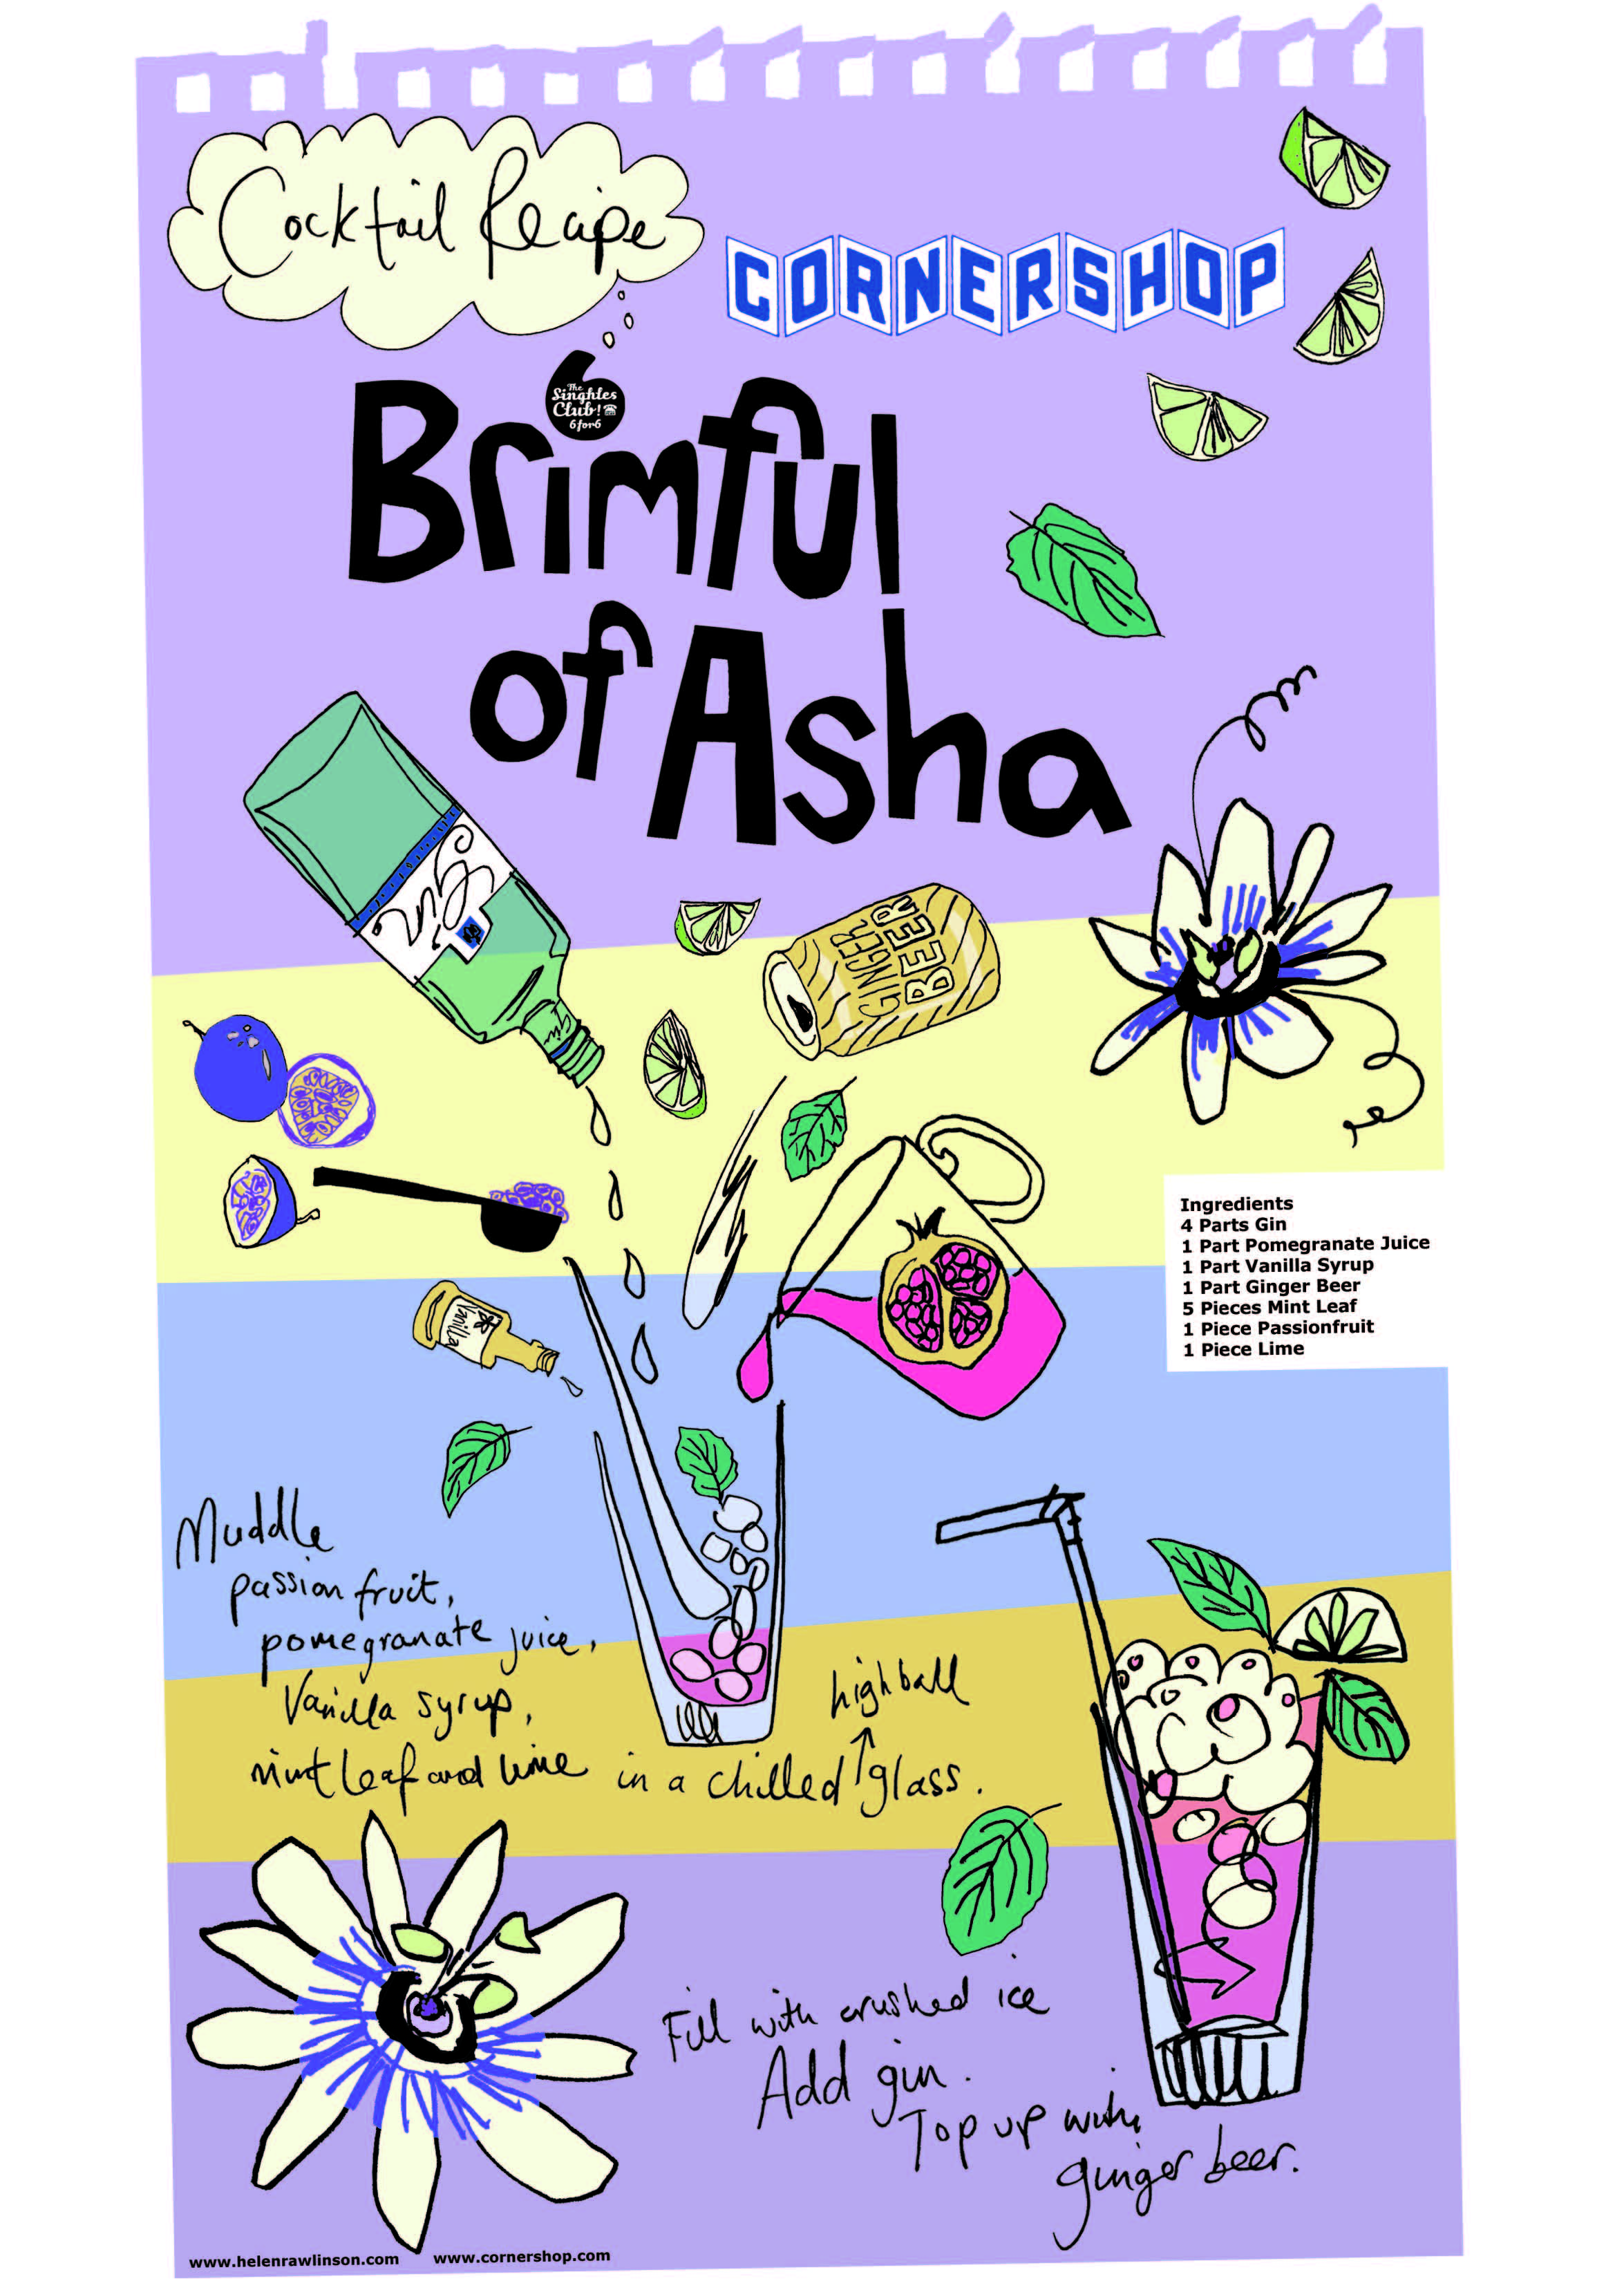 Cornershop Brimful of Asha Cocktail - designed by Helen Rawlinson